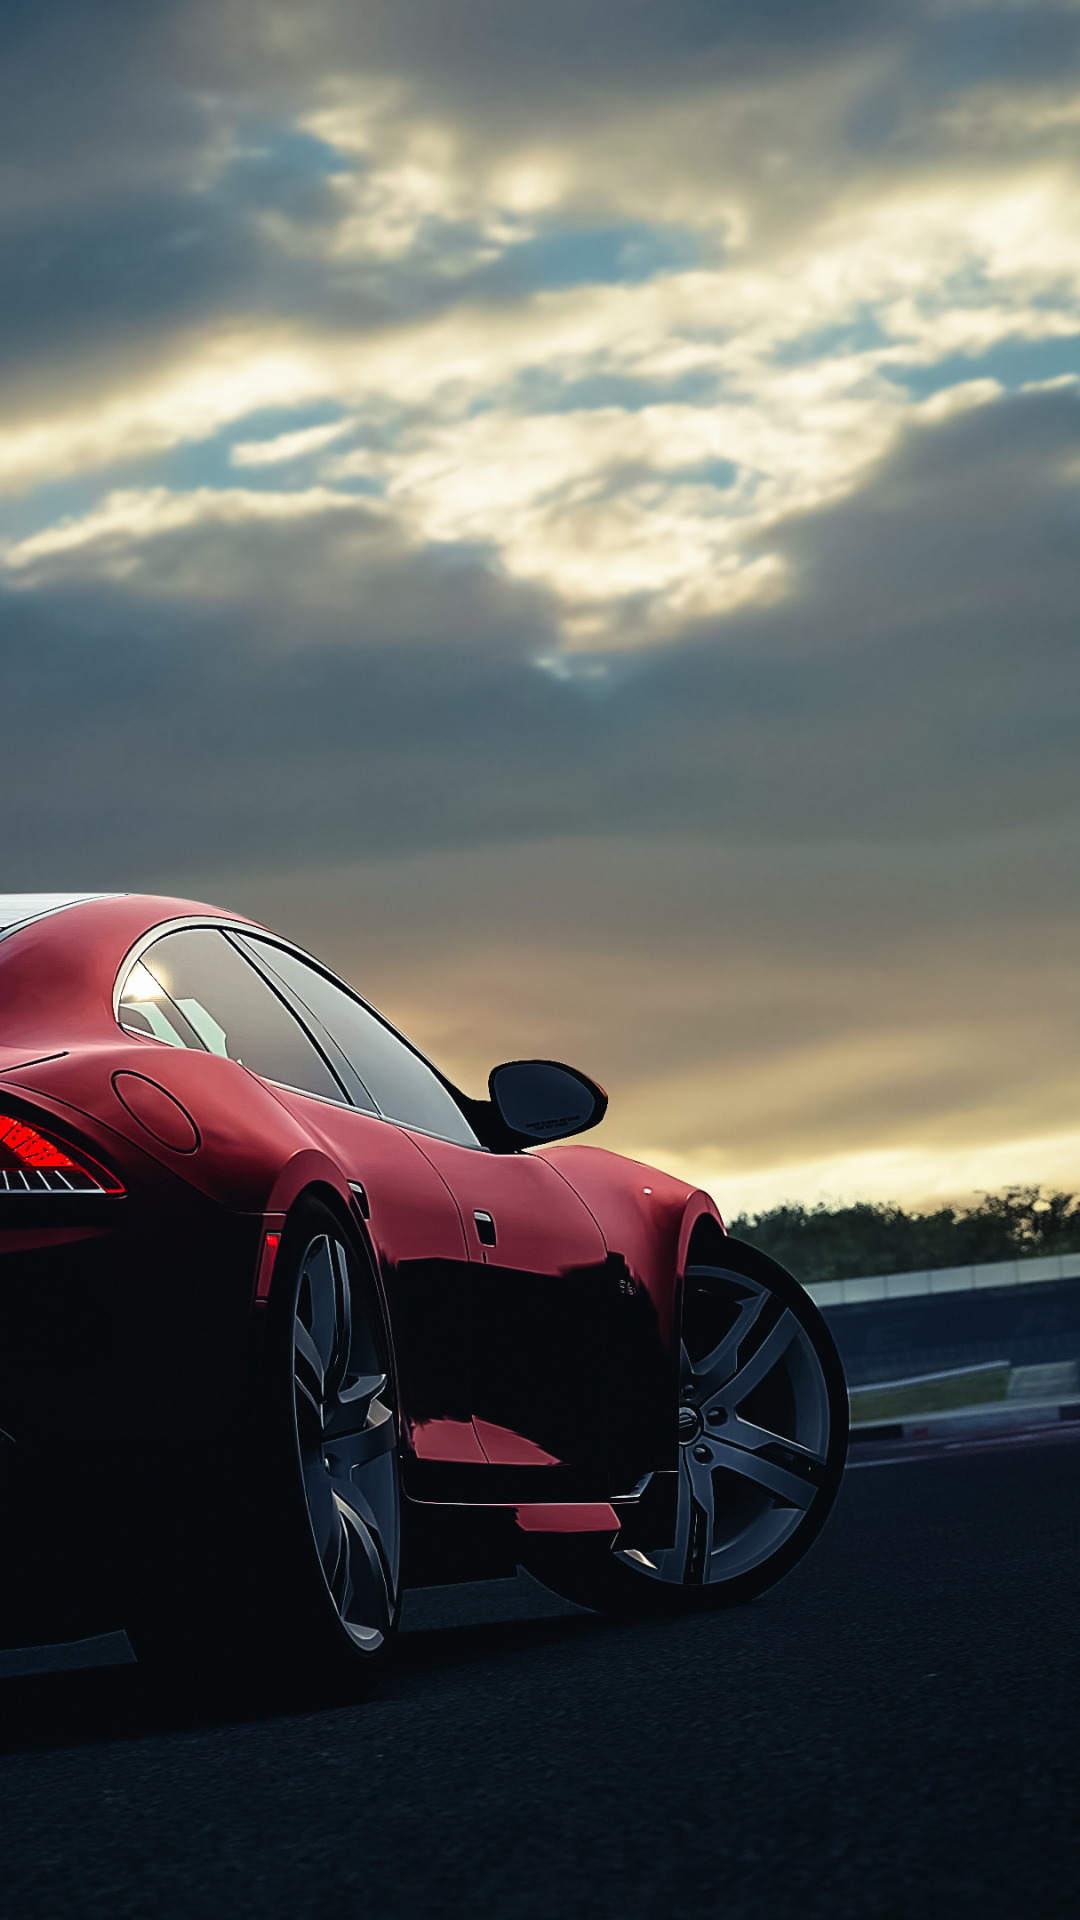 Free Download Ultra Hd 4k Cars Wallpapers Desktop Backgrounds Hd 3840x2160 For Your Desktop Mobile Tablet Explore 47 4k Car Wallpapers For Desktop 4k Corvette Wallpaper 4k Ultra Wide